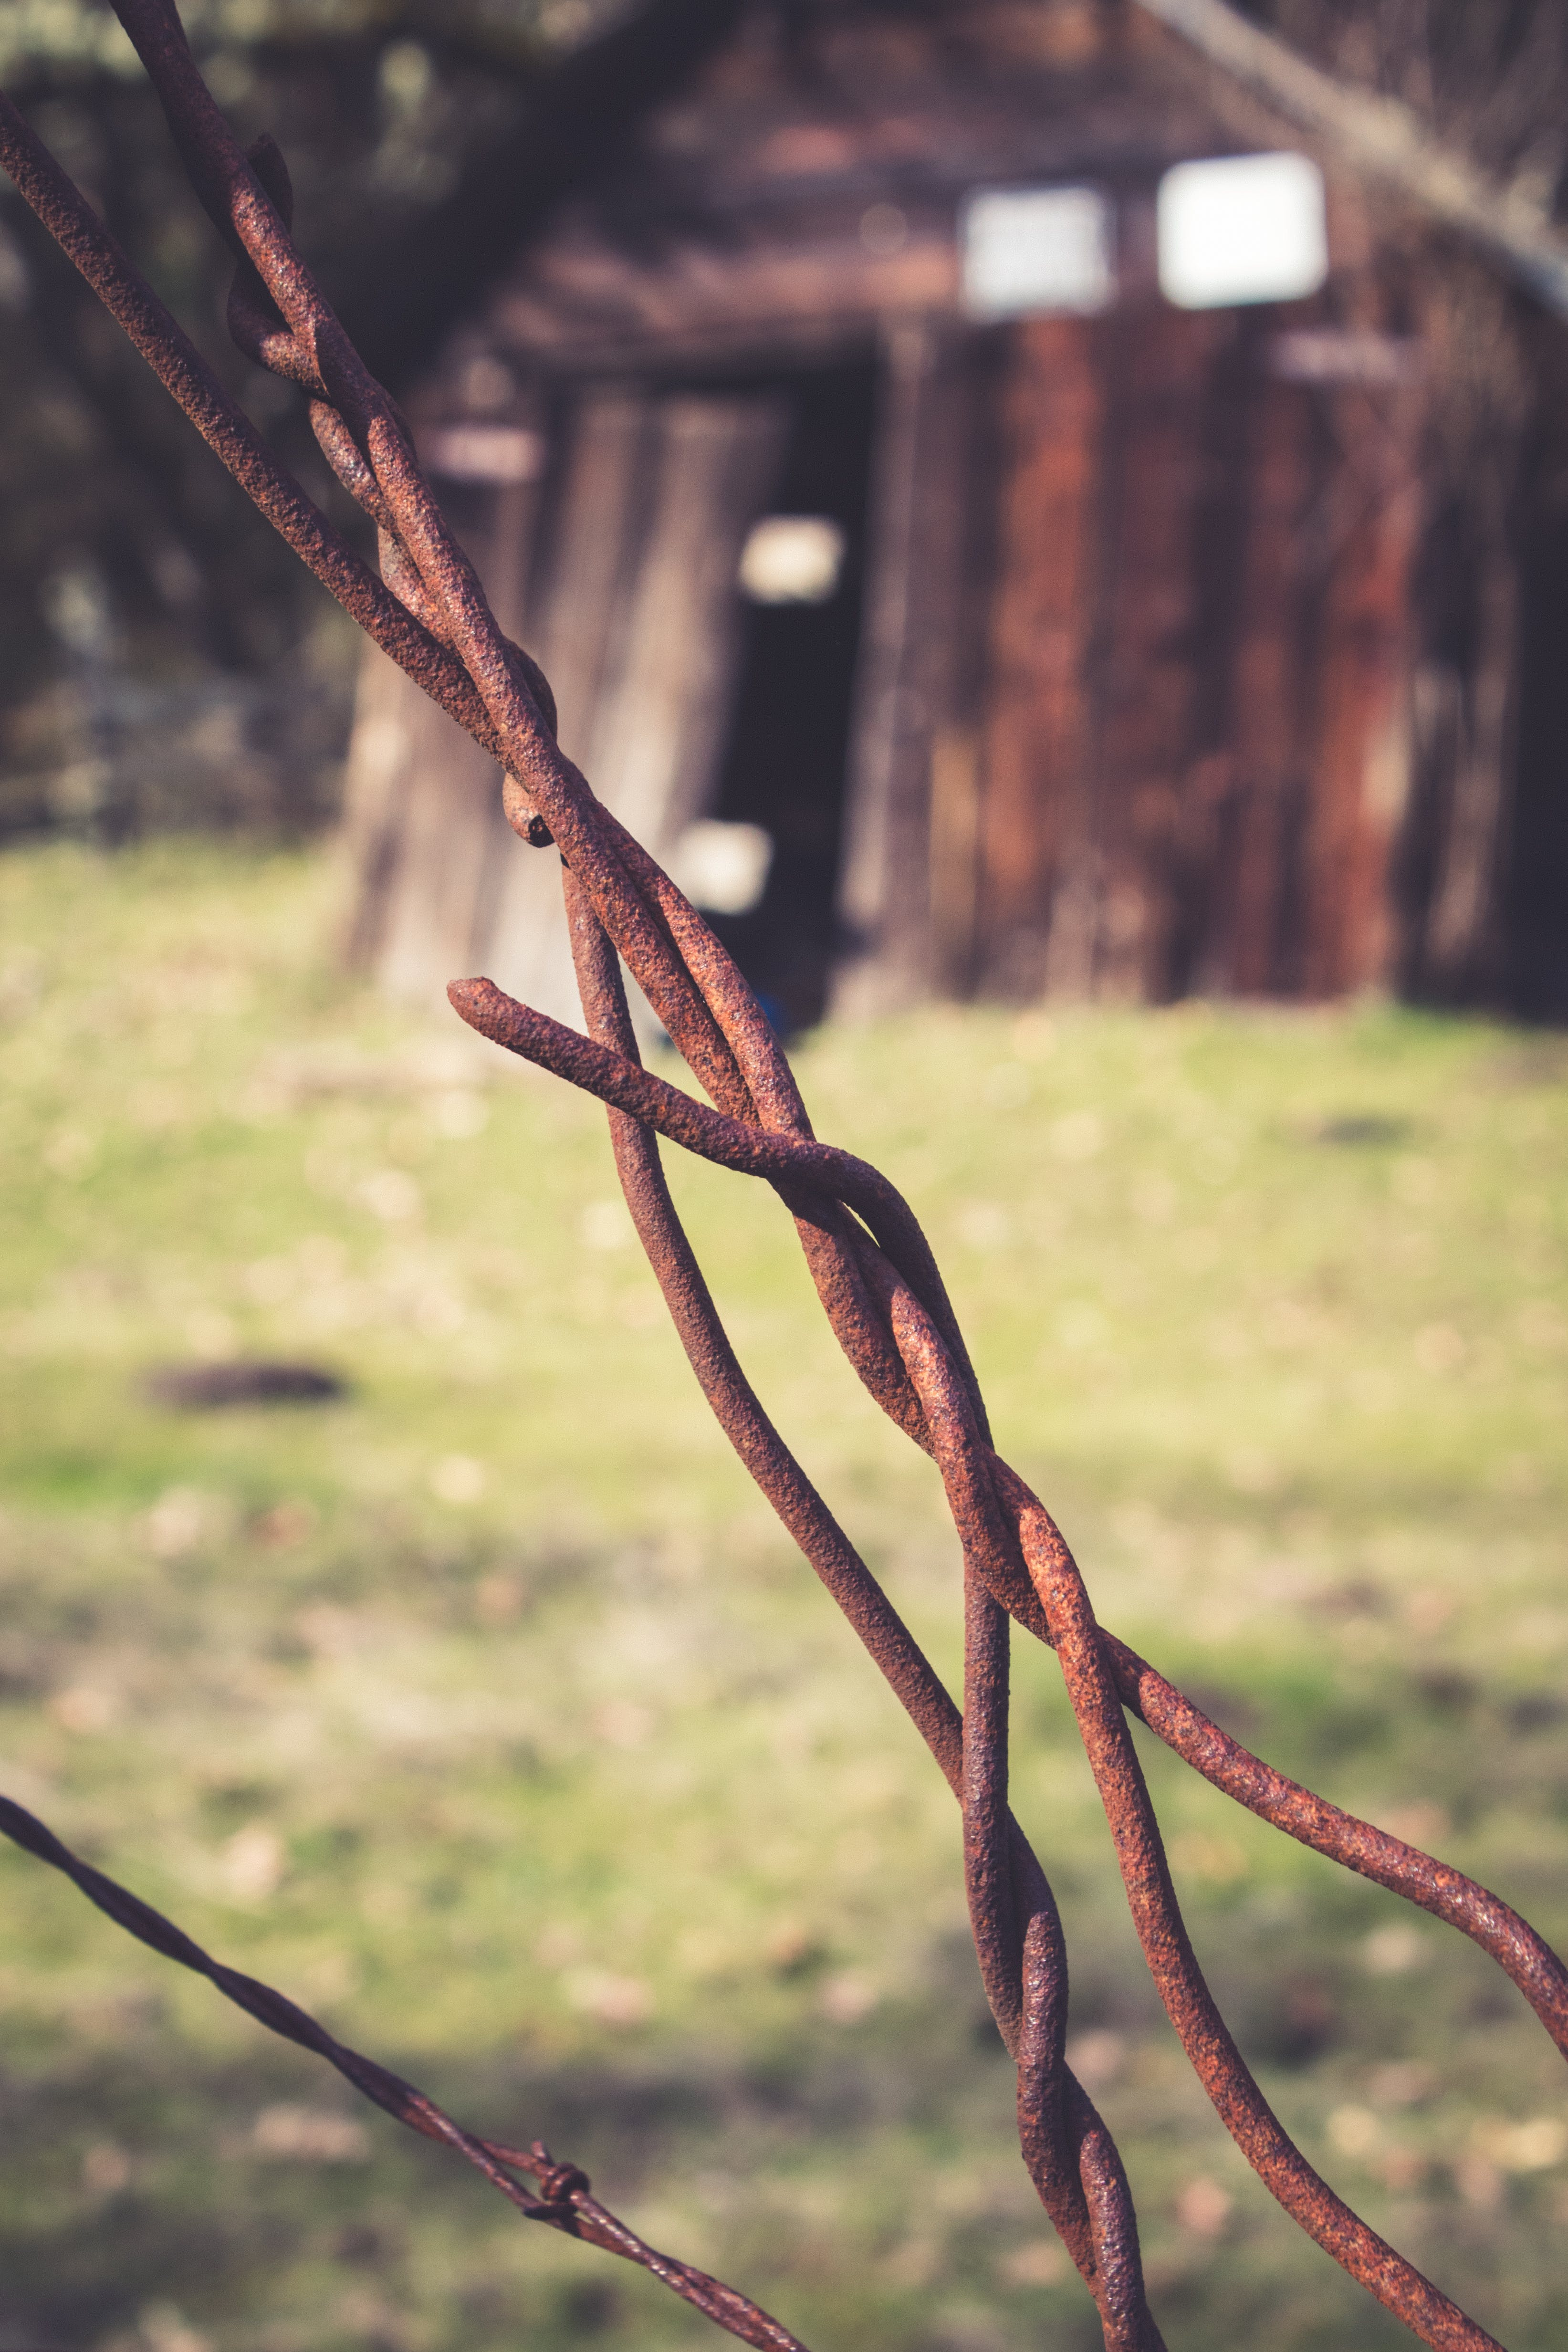 Free stock photo of barbed wire, close up, close-up, decay